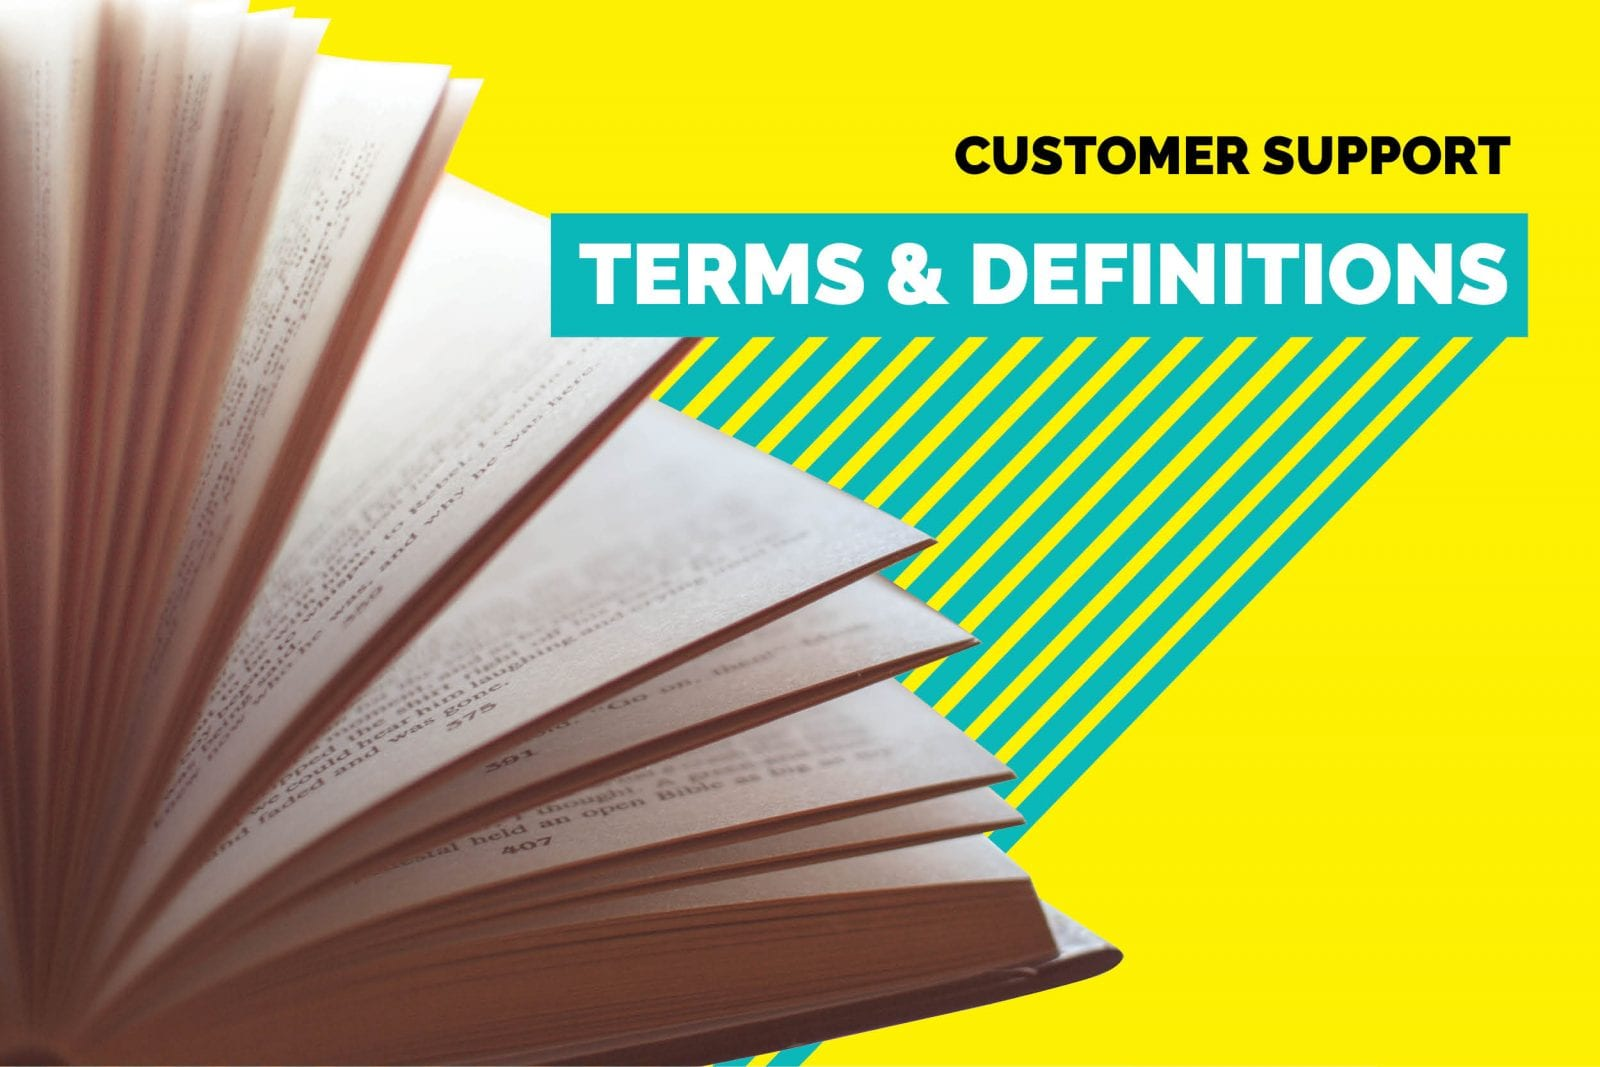 Must Know Customer Support Terms and Definitions